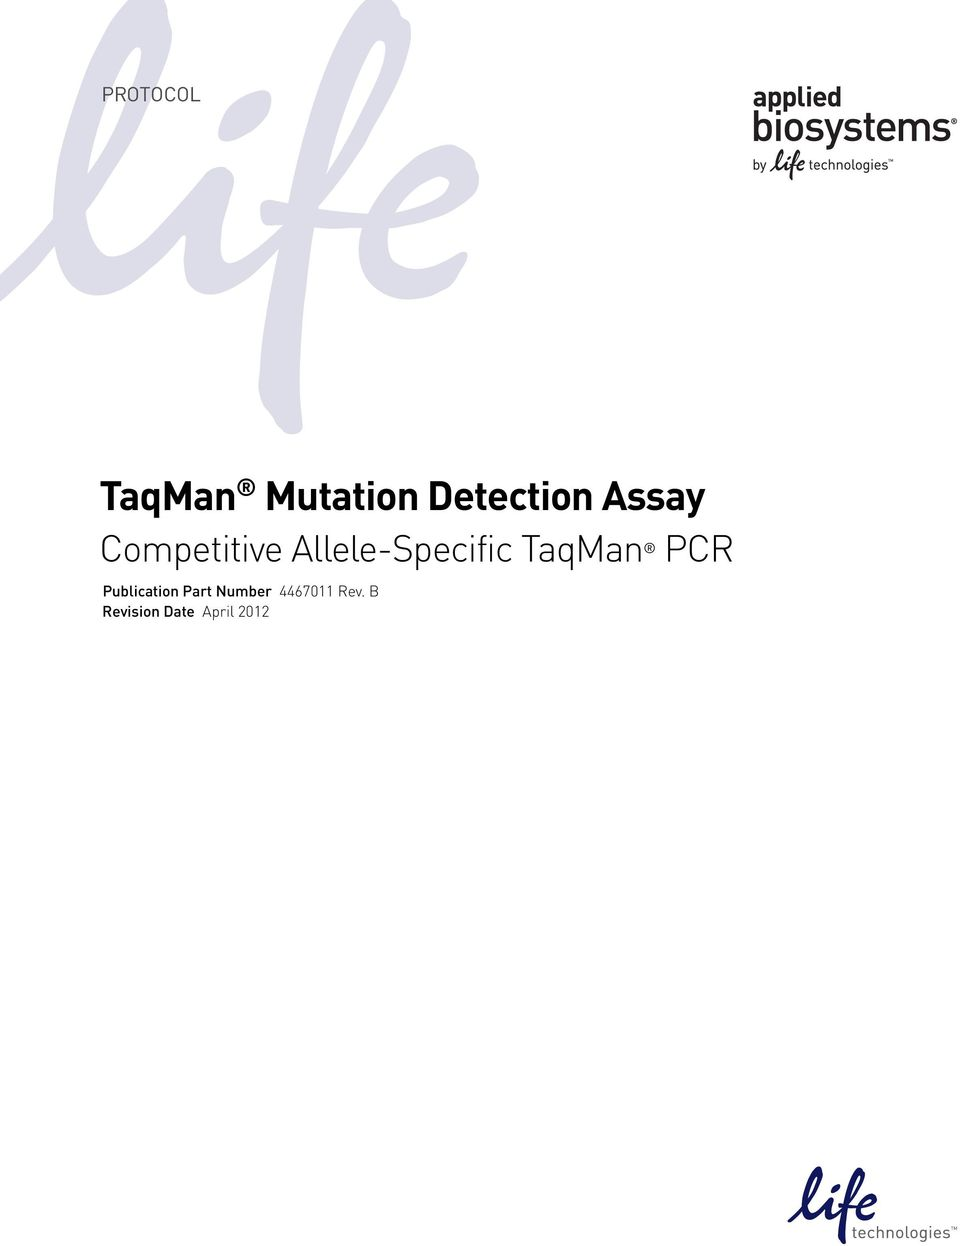 TaqMan PCR Publication Part Number